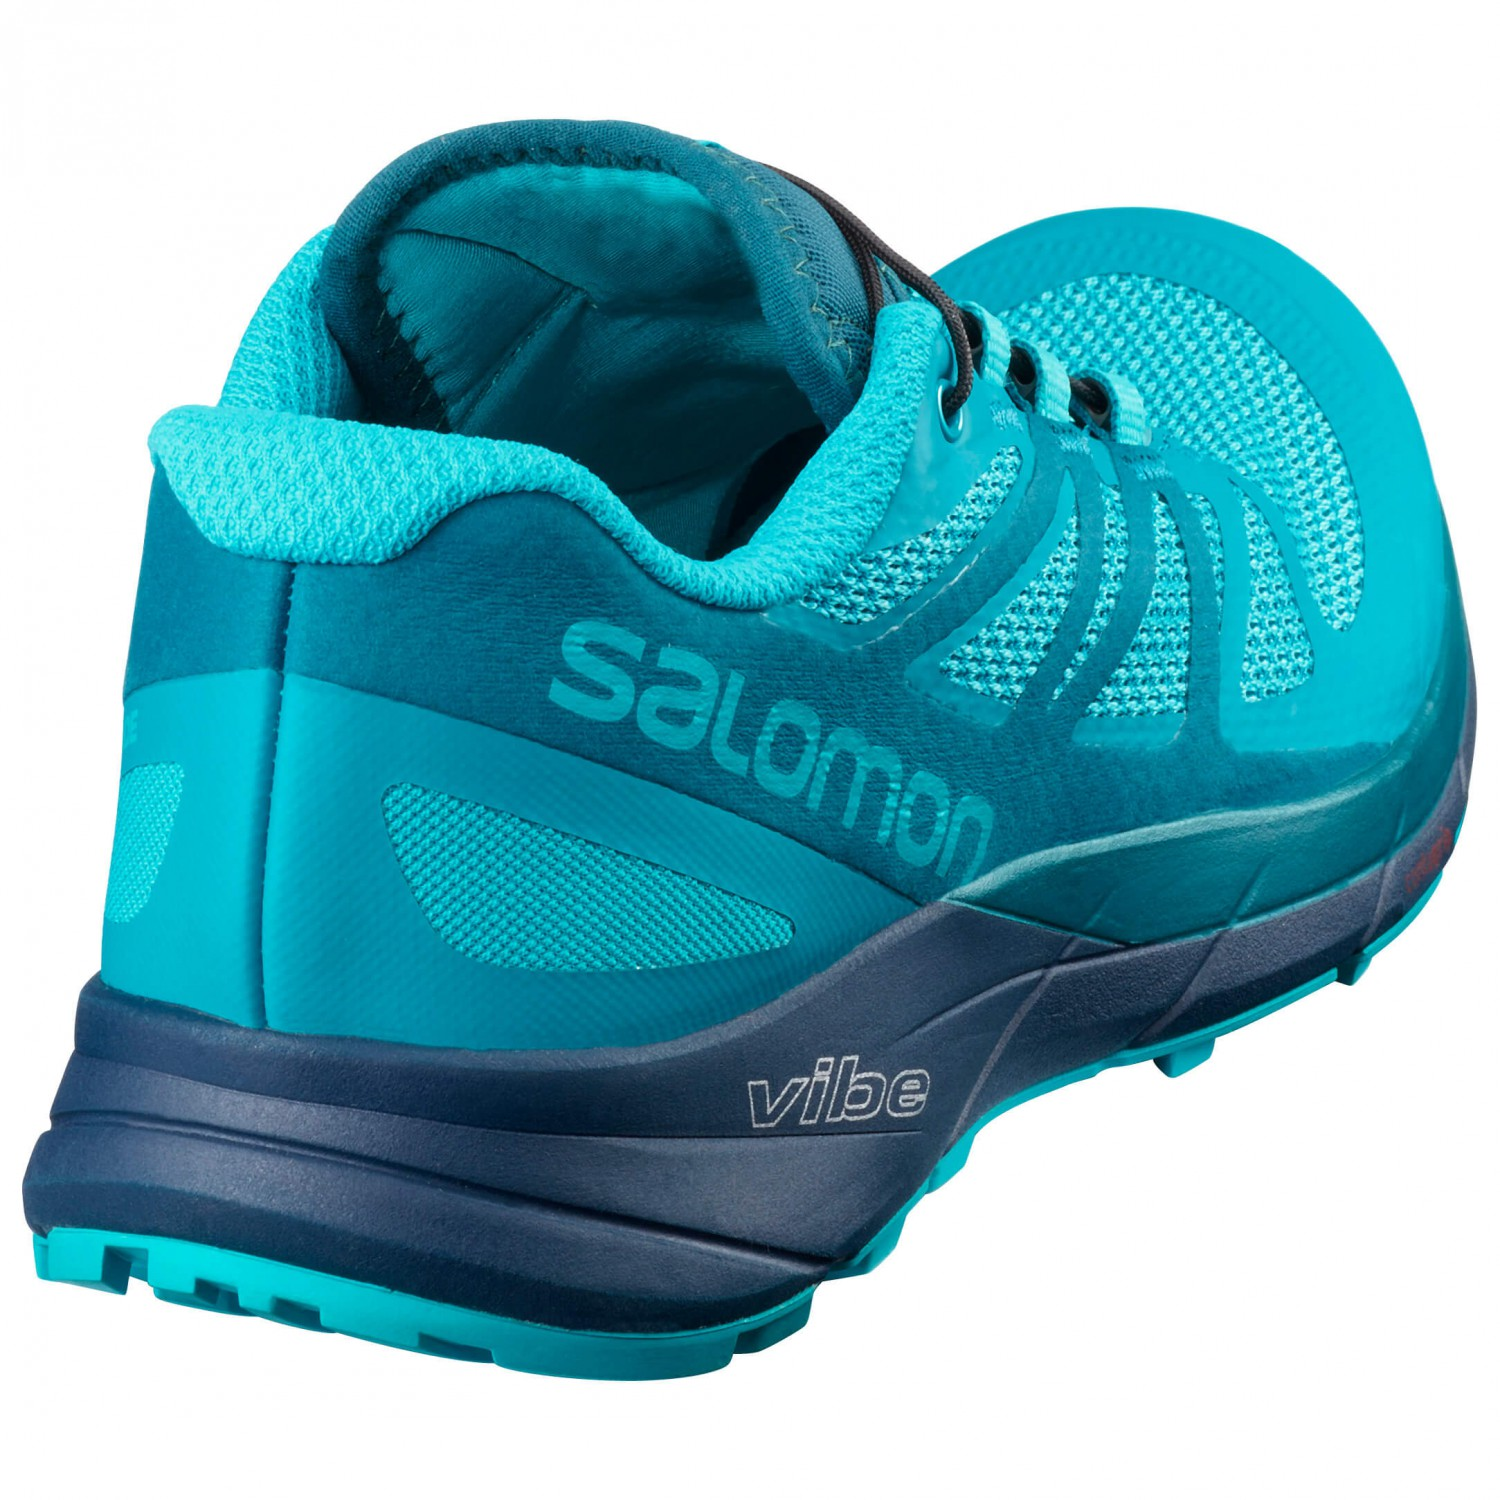 3c51d17ac655 ... Salomon - Women s Sense Ride - Chaussures de trail running ...